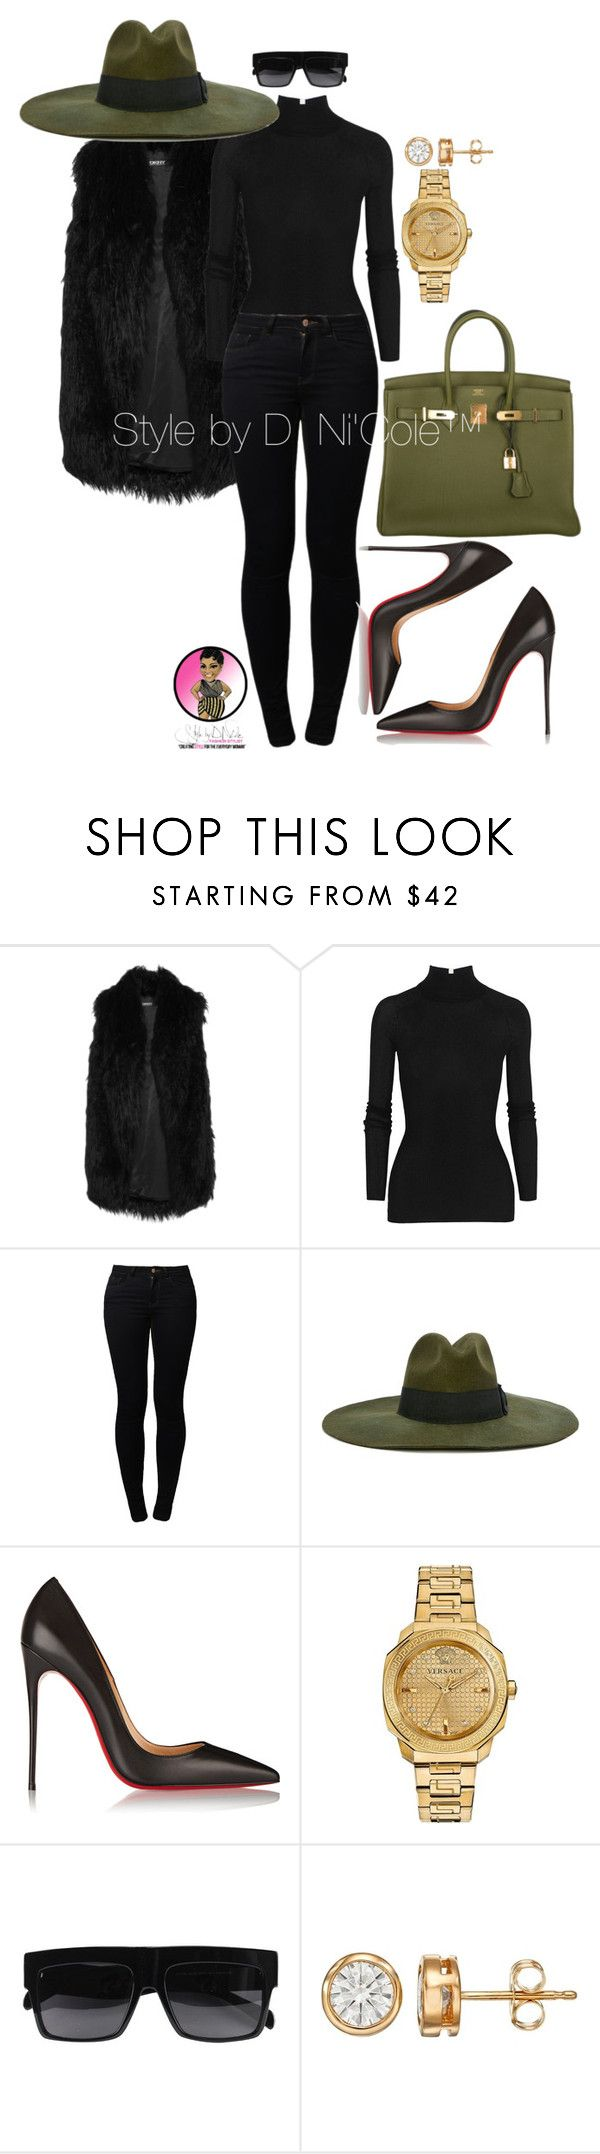 """Untitled #2939"" by stylebydnicole ❤ liked on Polyvore featuring DKNY, T By Alexander Wang, Noisy May, Diesel, Christian Louboutin, Hermès and Versace"